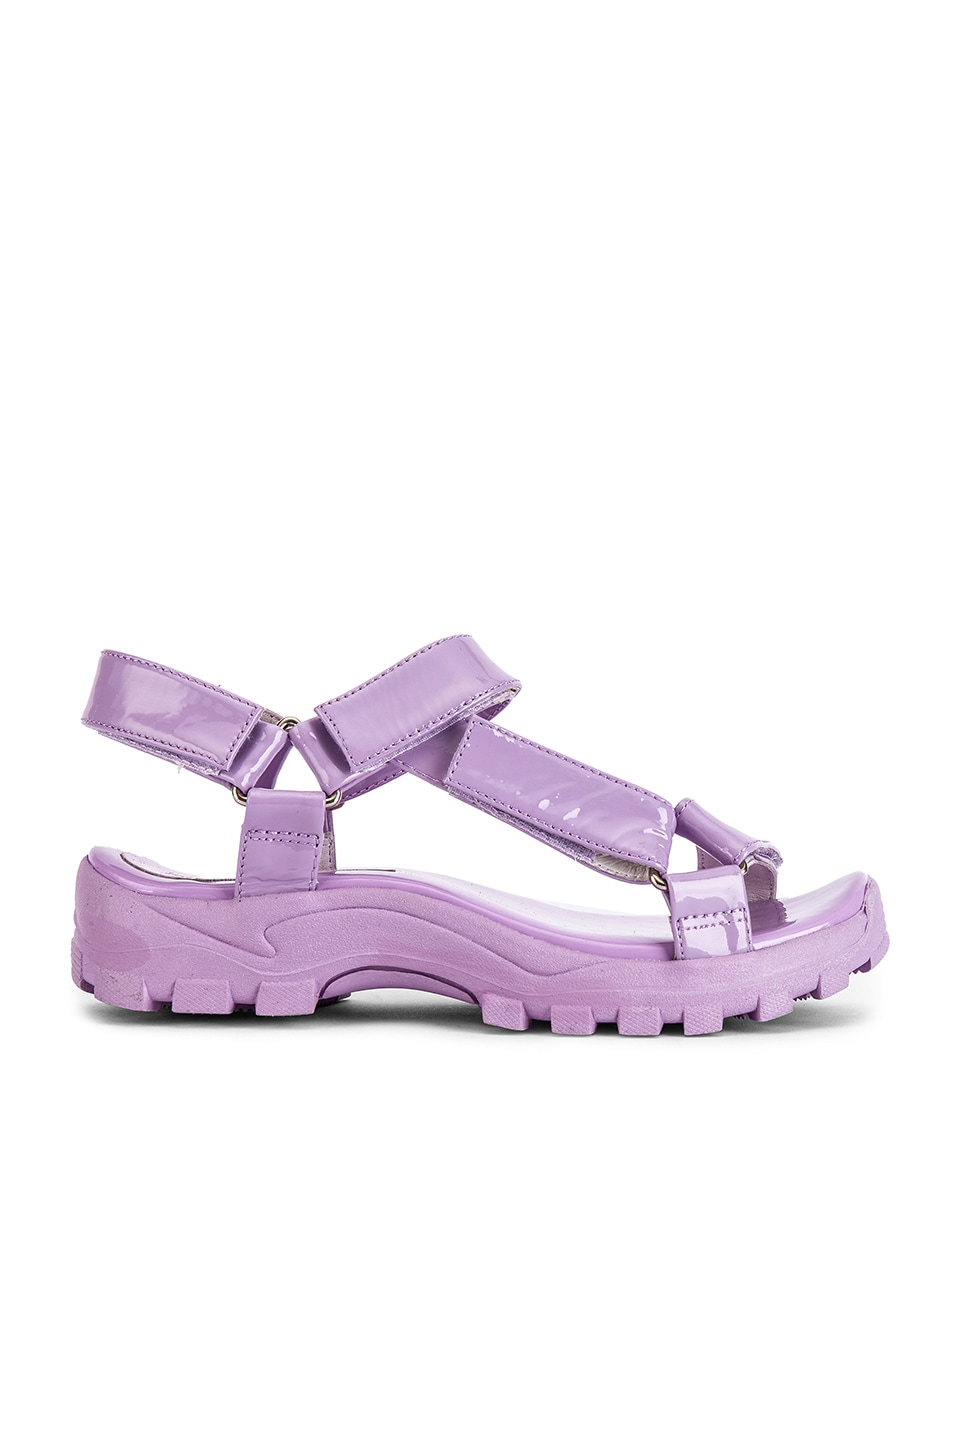 Jeffrey Campbell Patio Sandal in Lilac